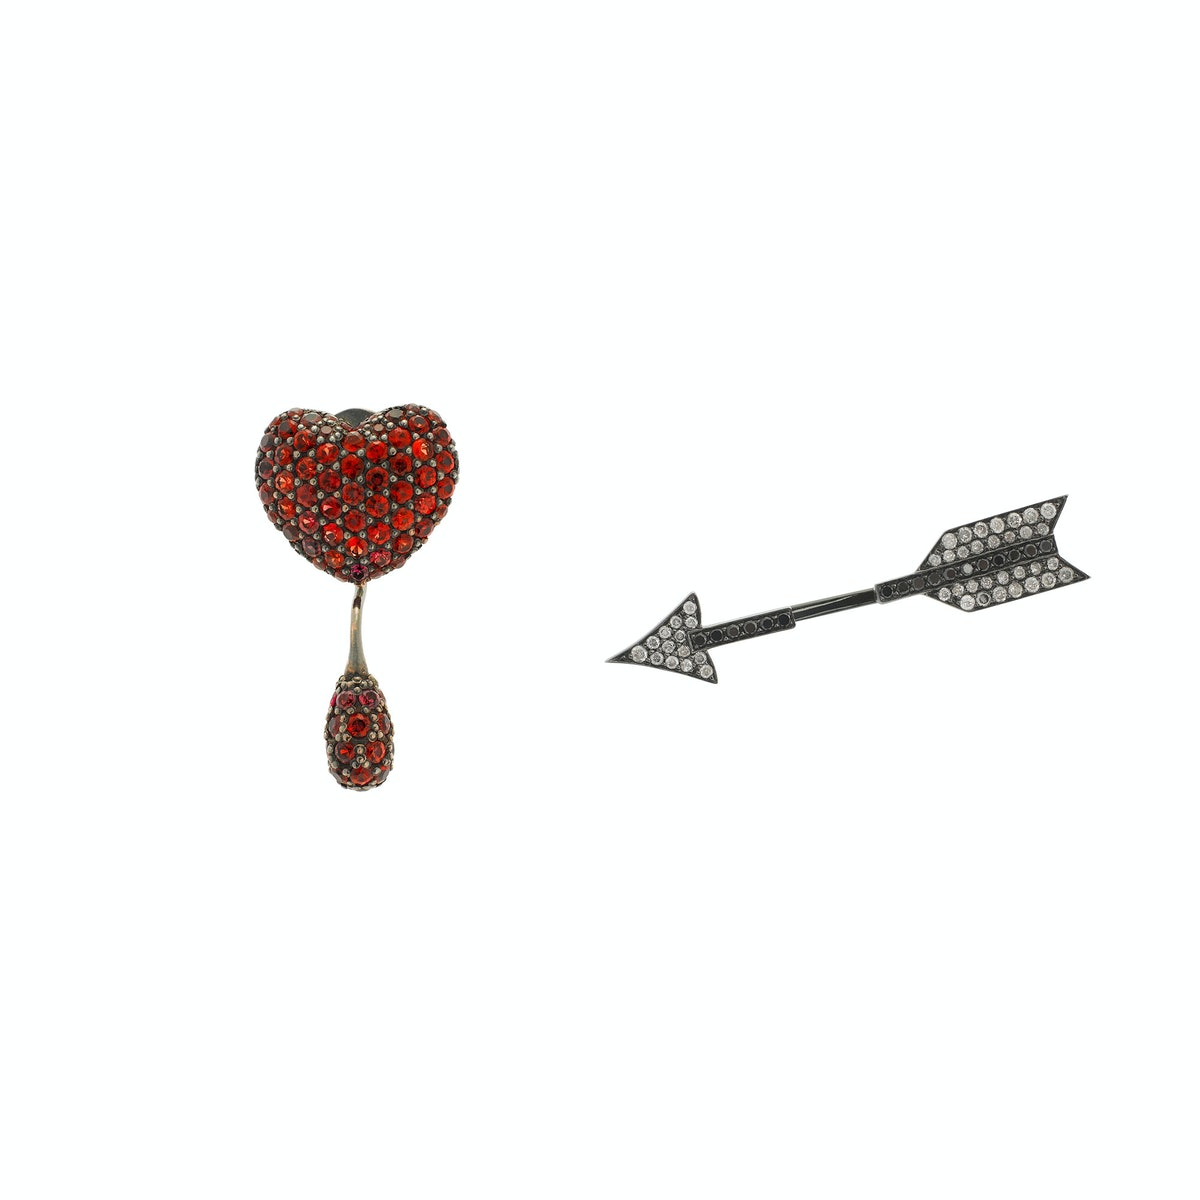 Runa-Heart-and-Arrow-earrings,-$5,465-at-Colette.com